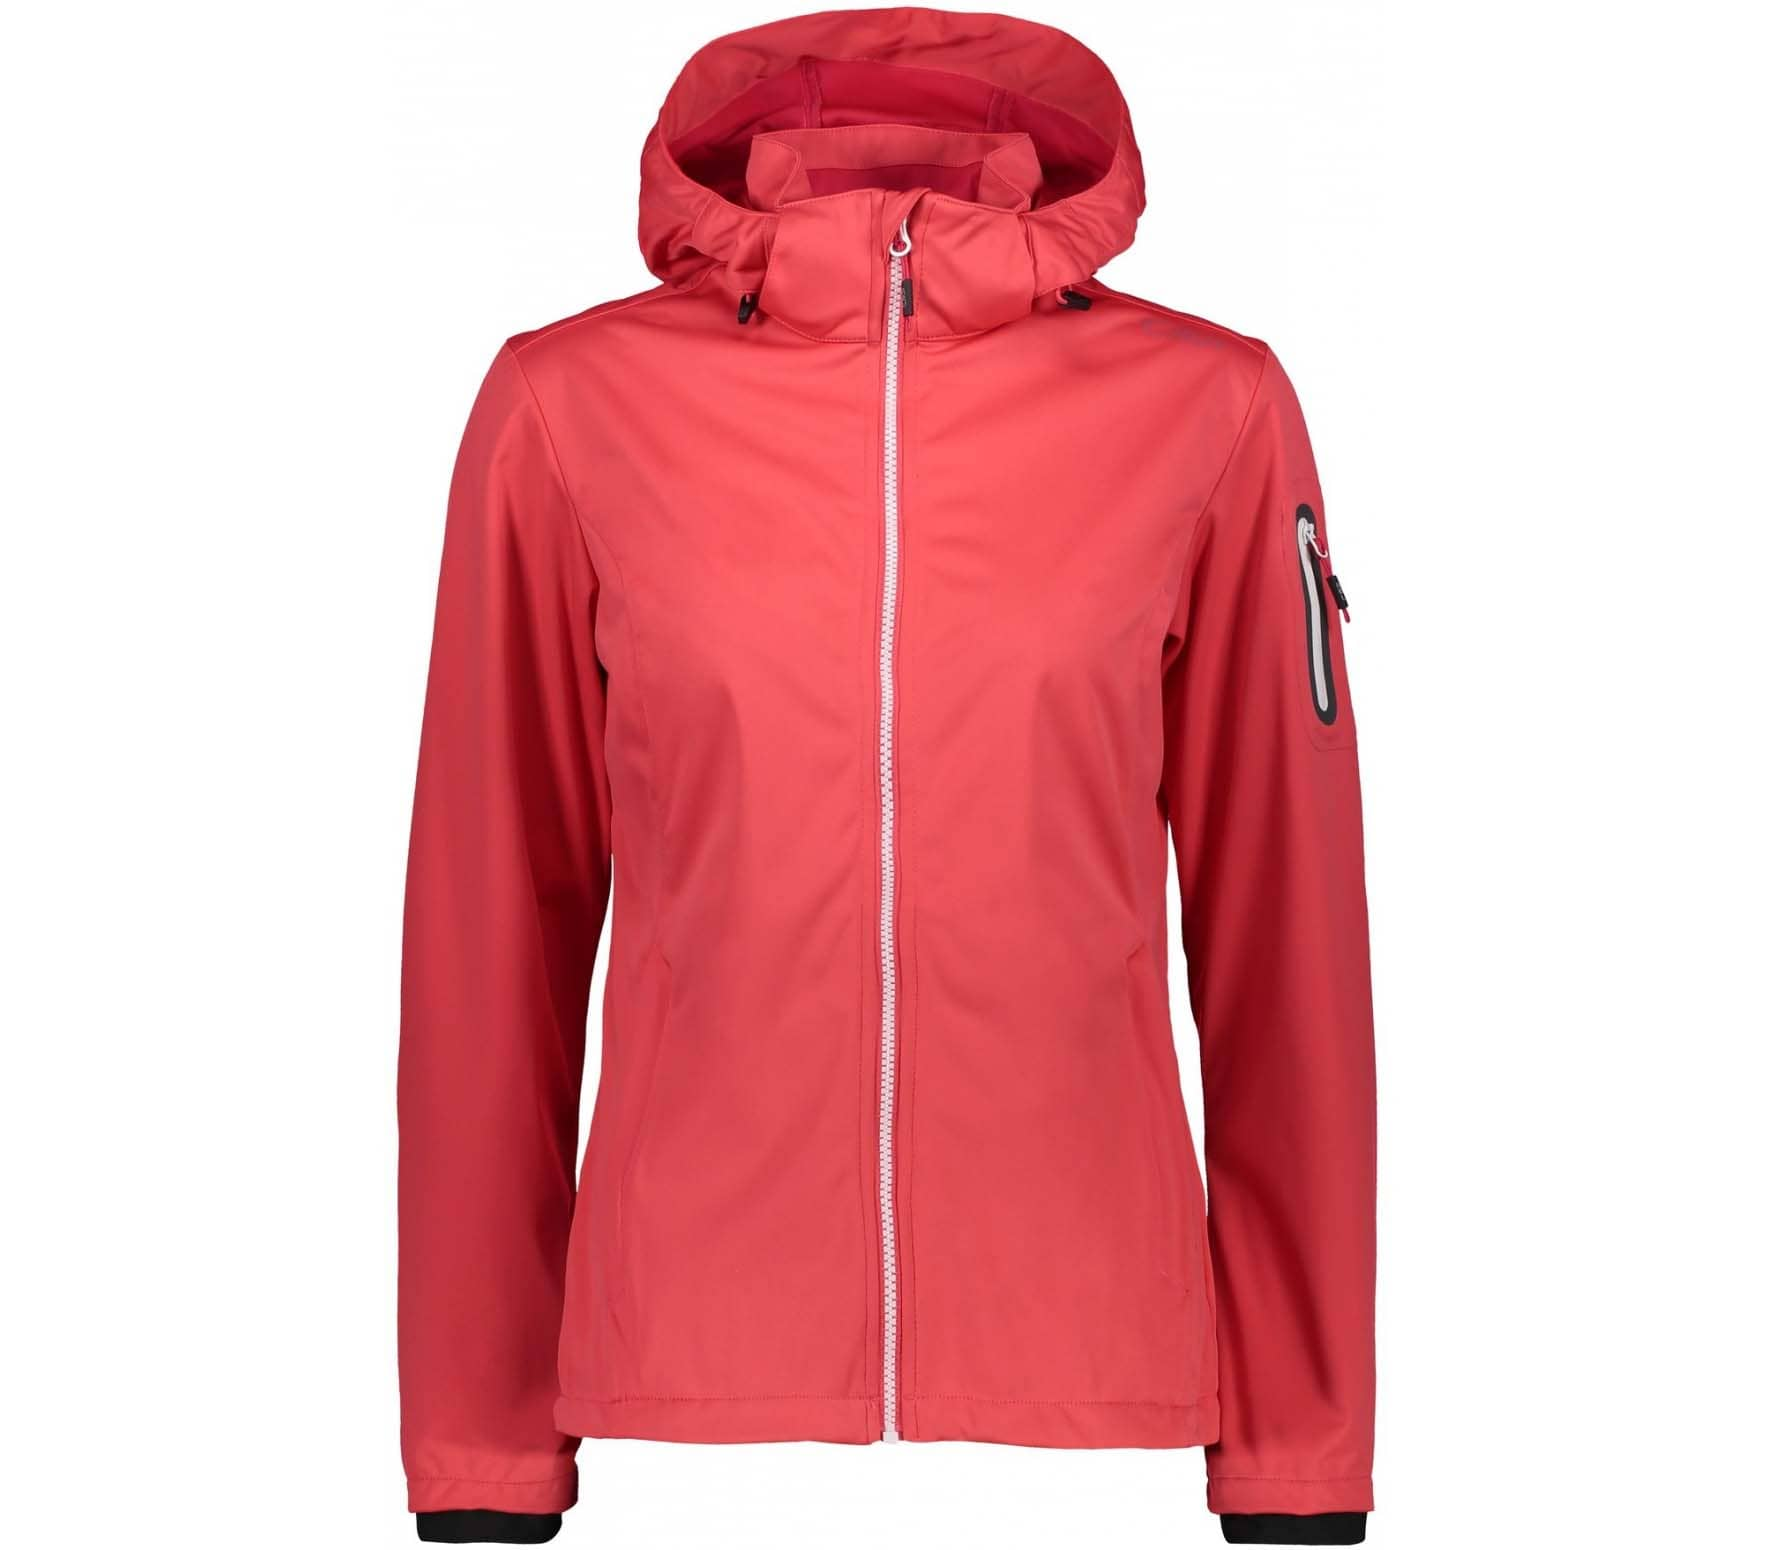 CMP Women's softshell jacket (red)